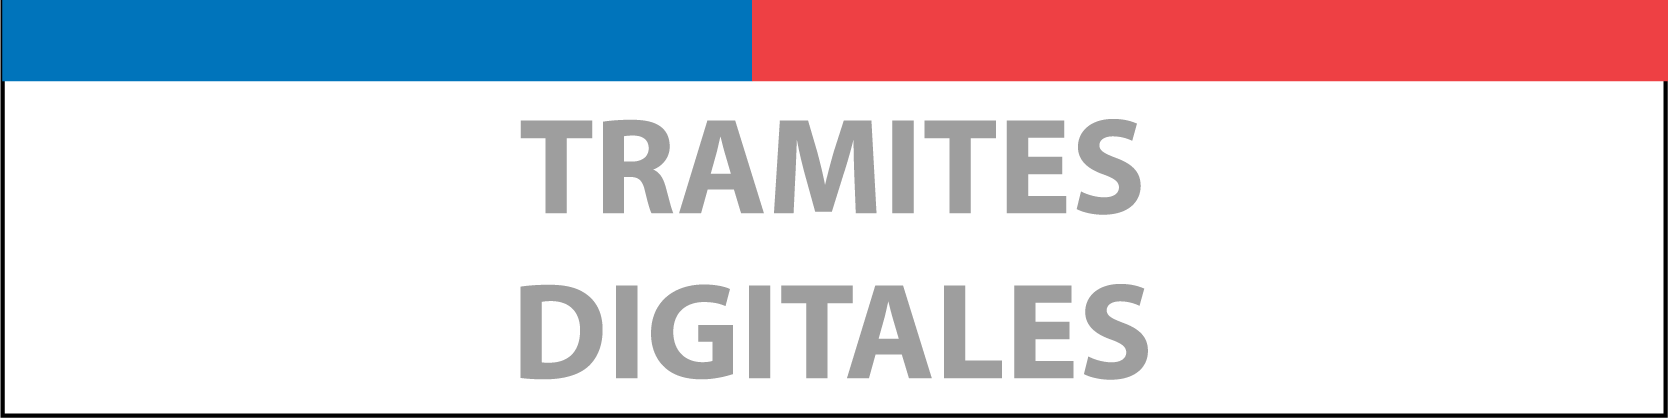 Tramites digitales